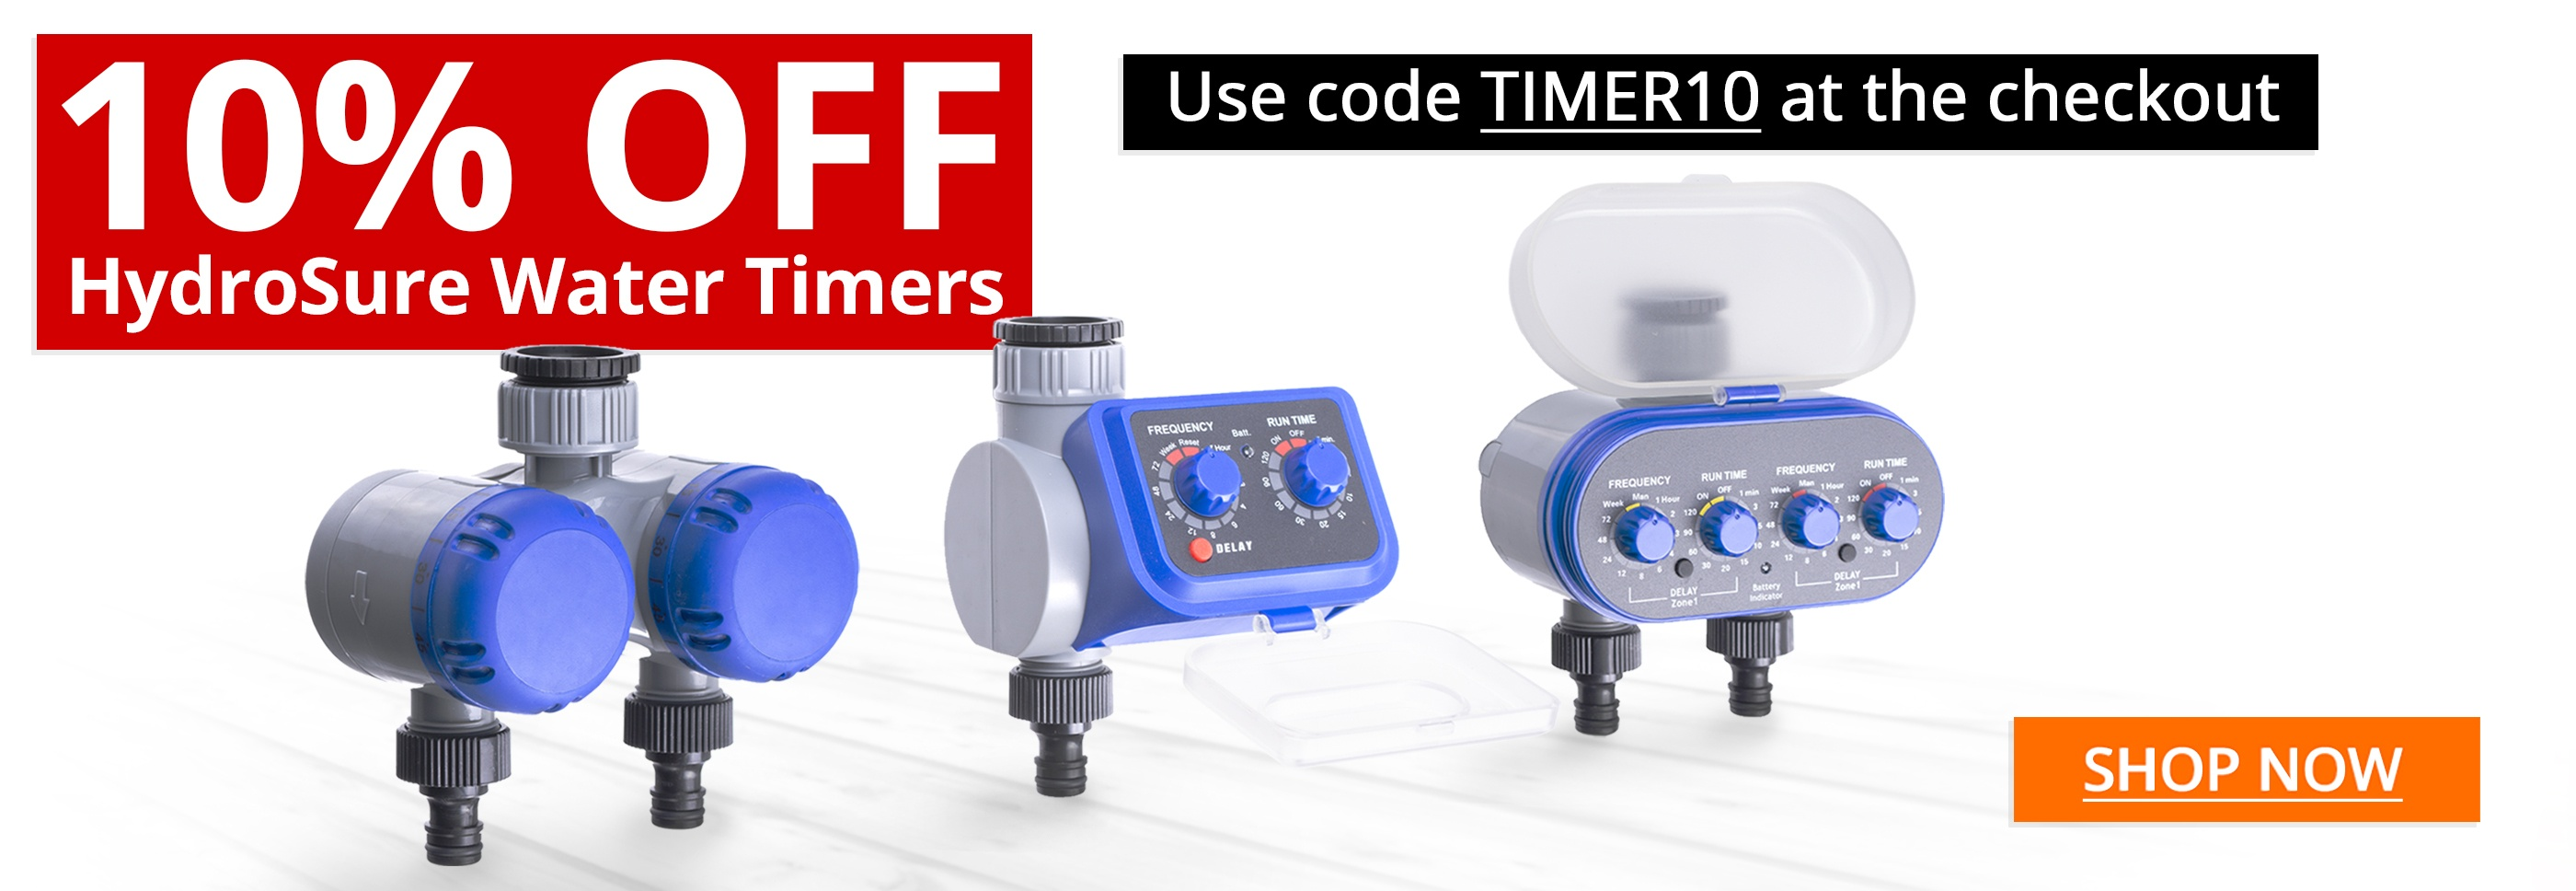 HydroSure Water Timers - 10% OFF